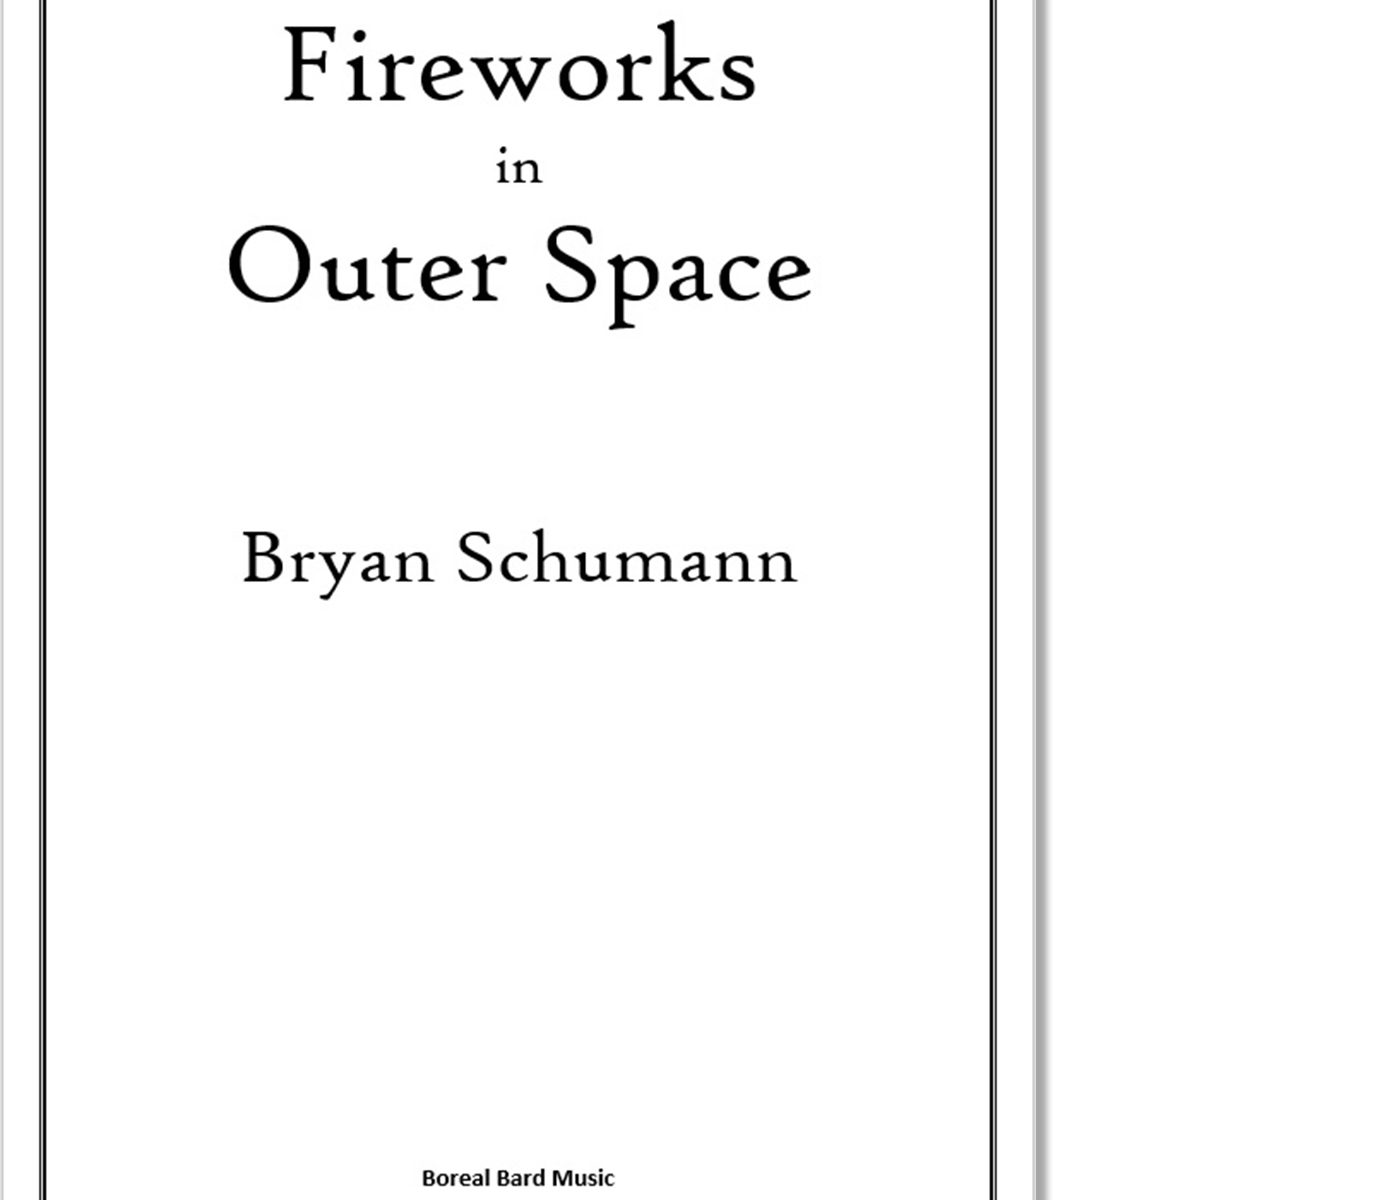 Fireworks in Outer Space - Sheet Music Product Image